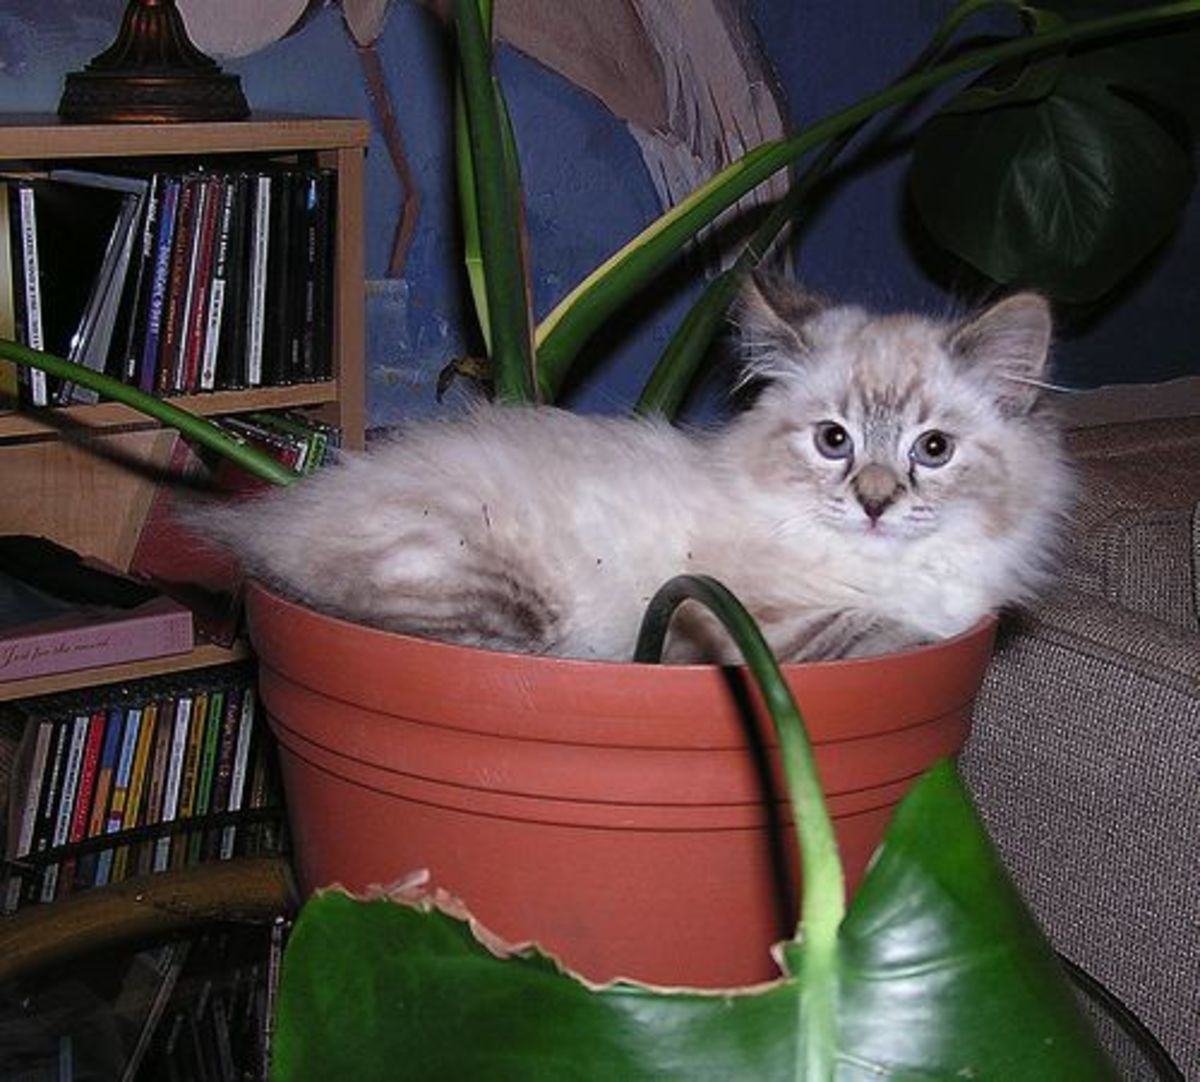 A-Z of Houseplants that are Poisonous to your Cats.